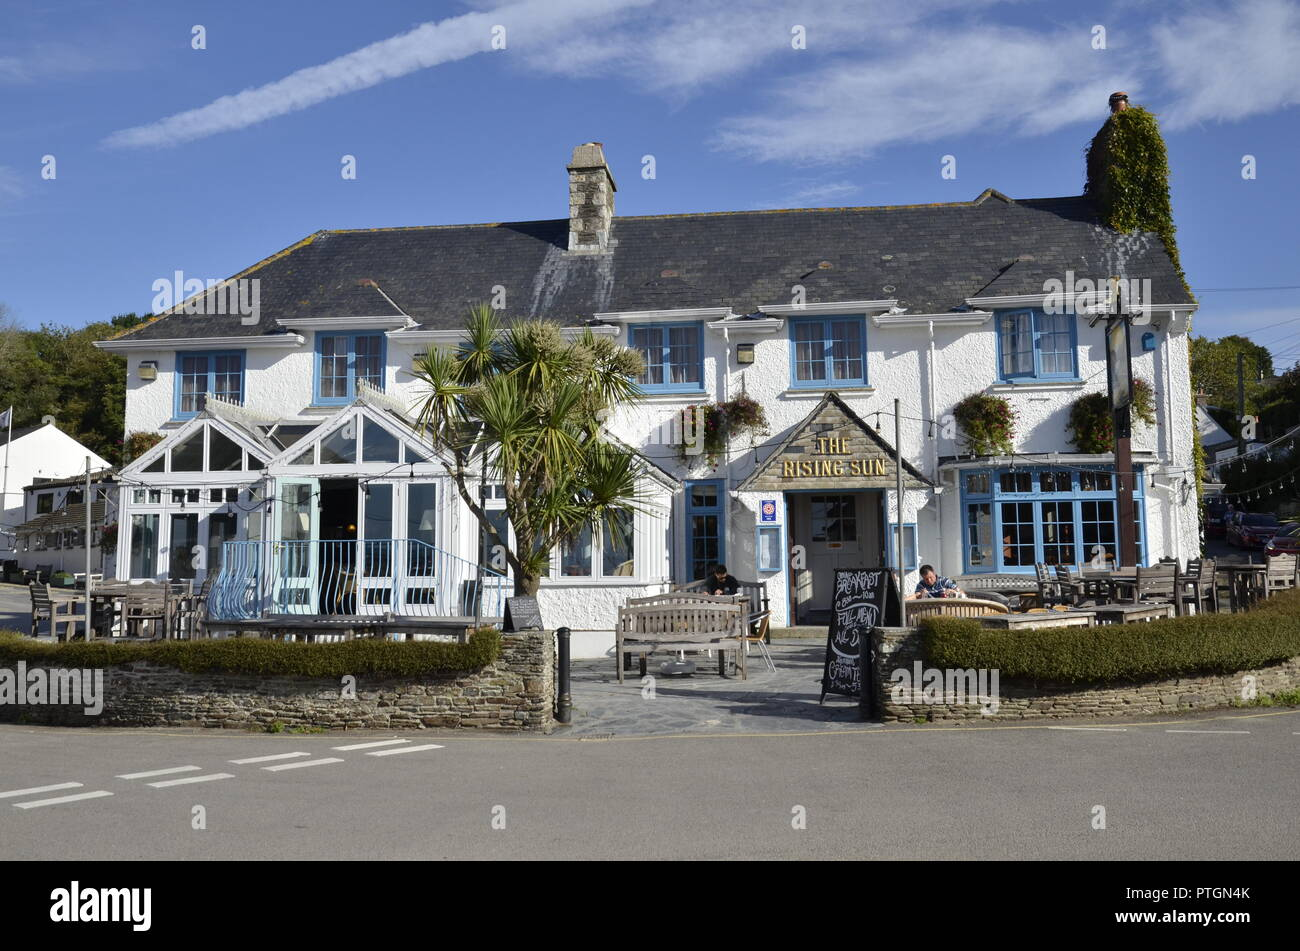 The Rising Sun Inn at St Mawes in Cornwall - Stock Image